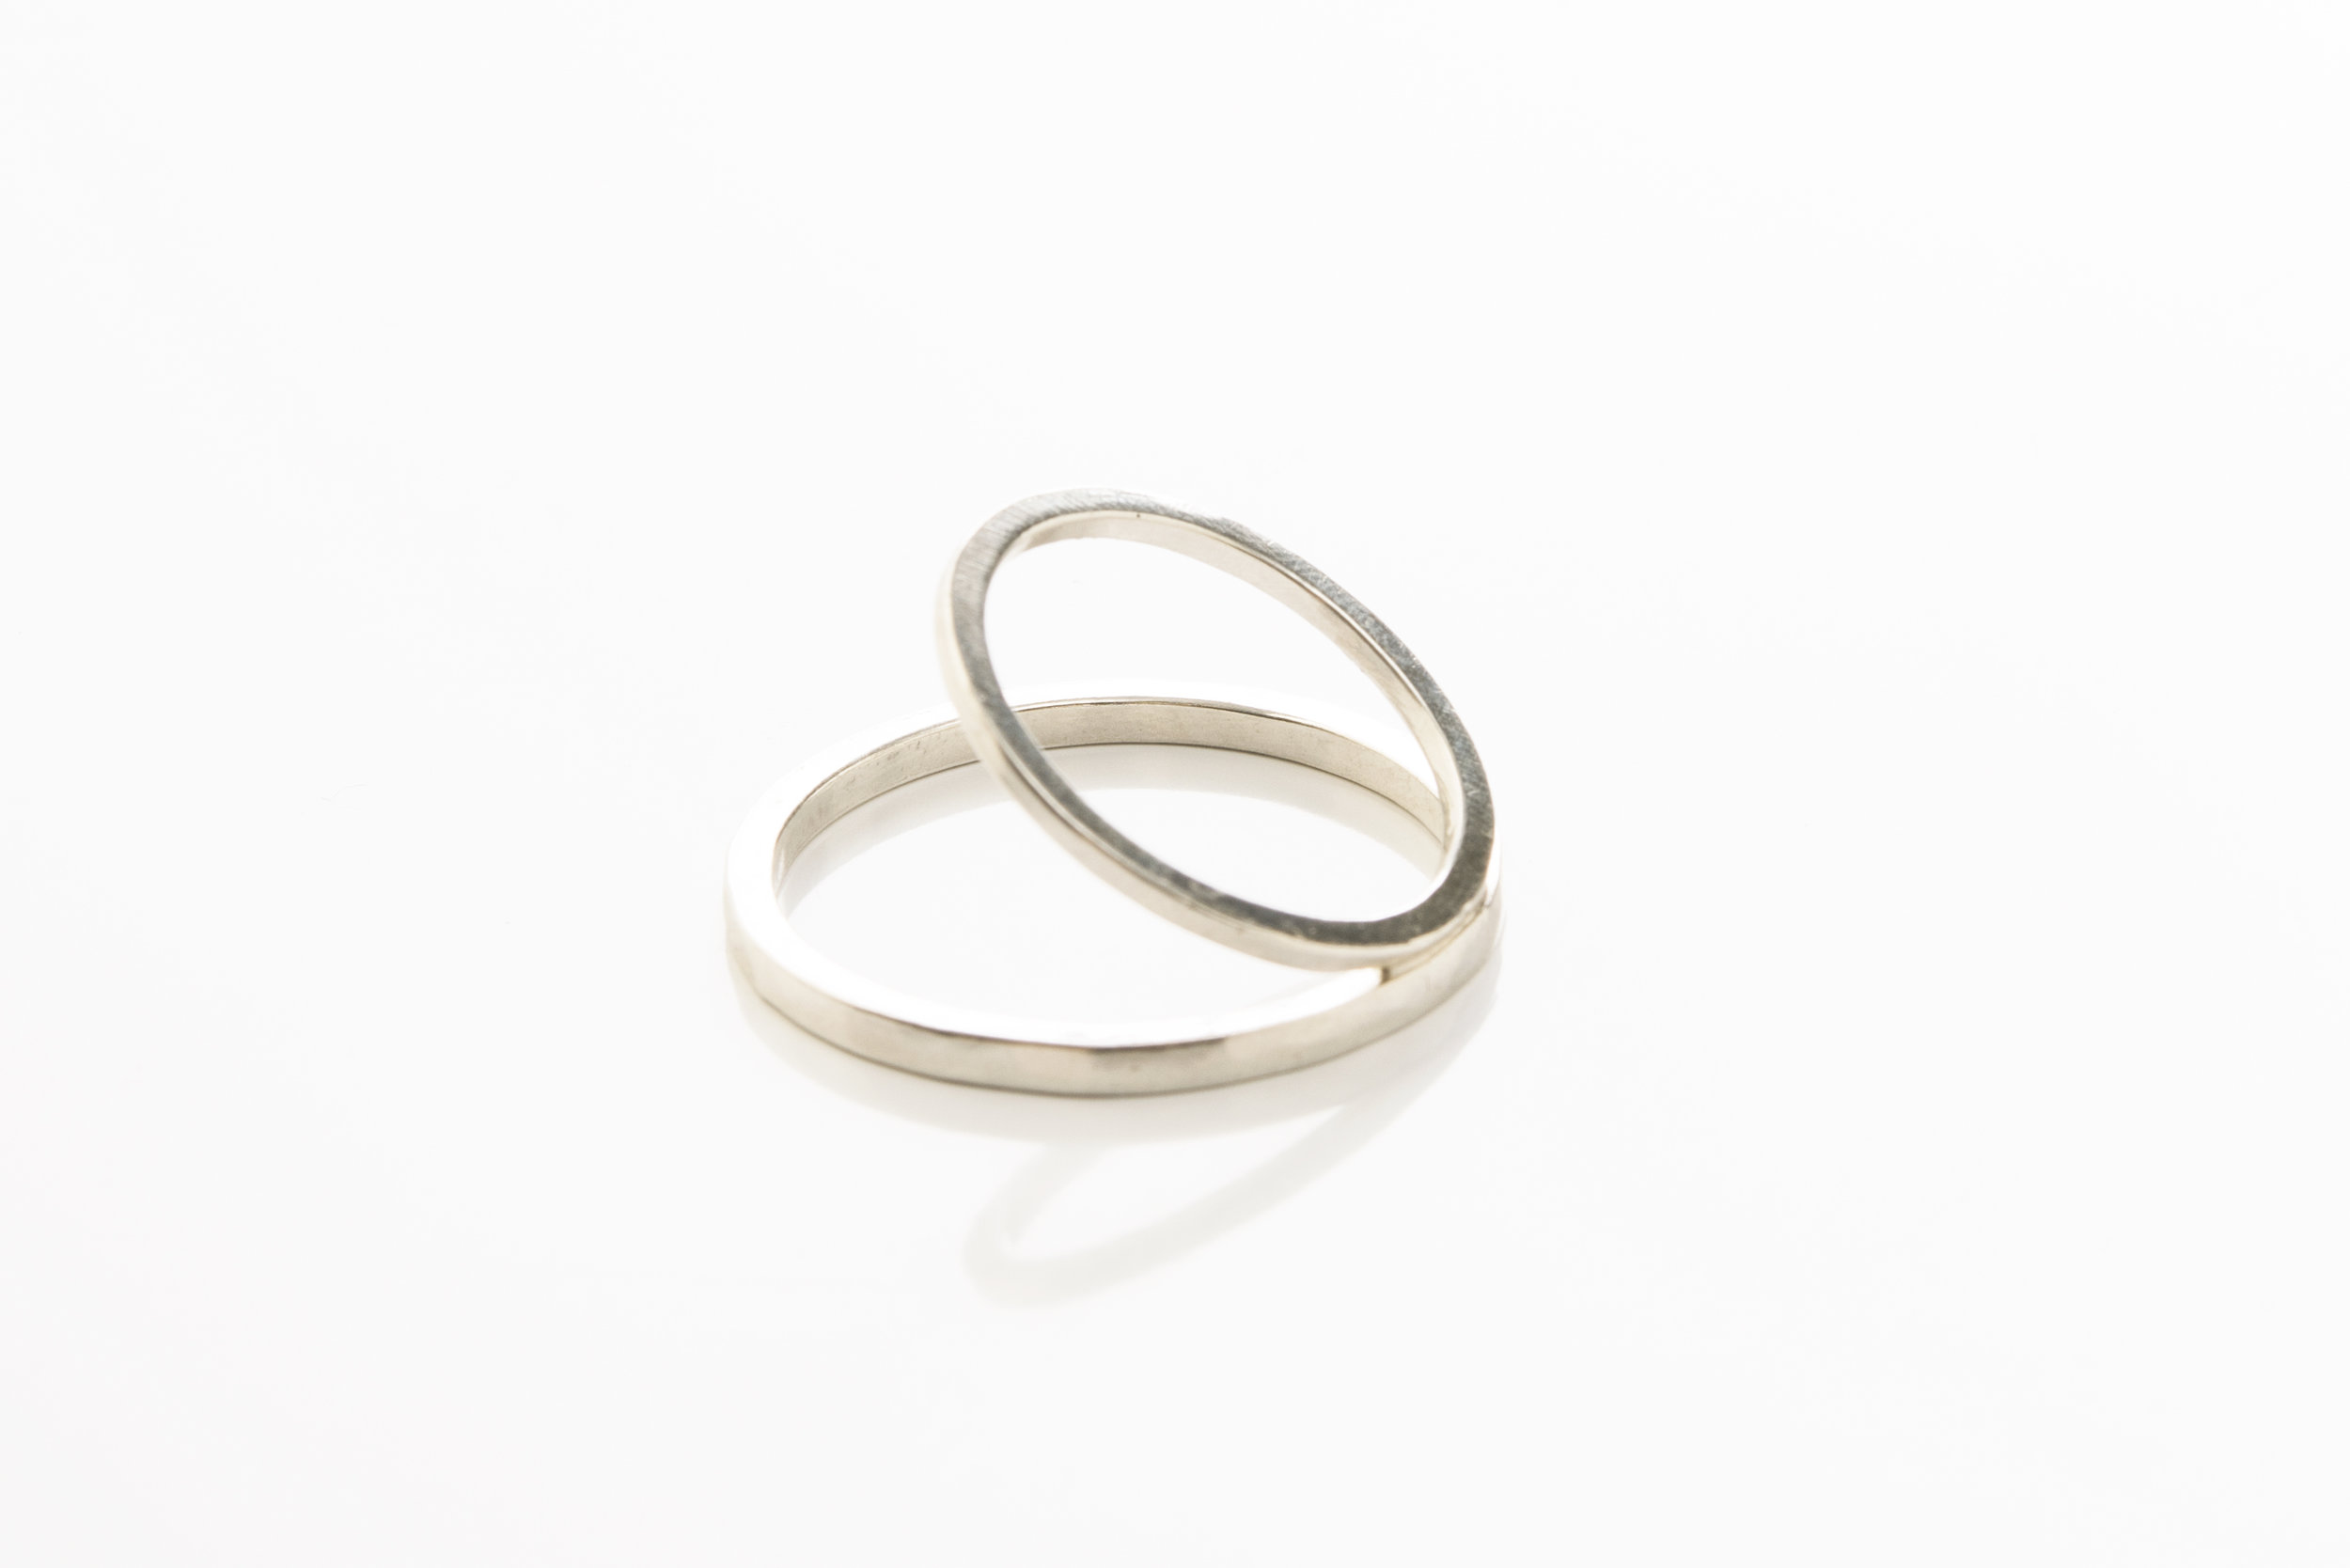 11_Ulterior_double band ring_3.jpg